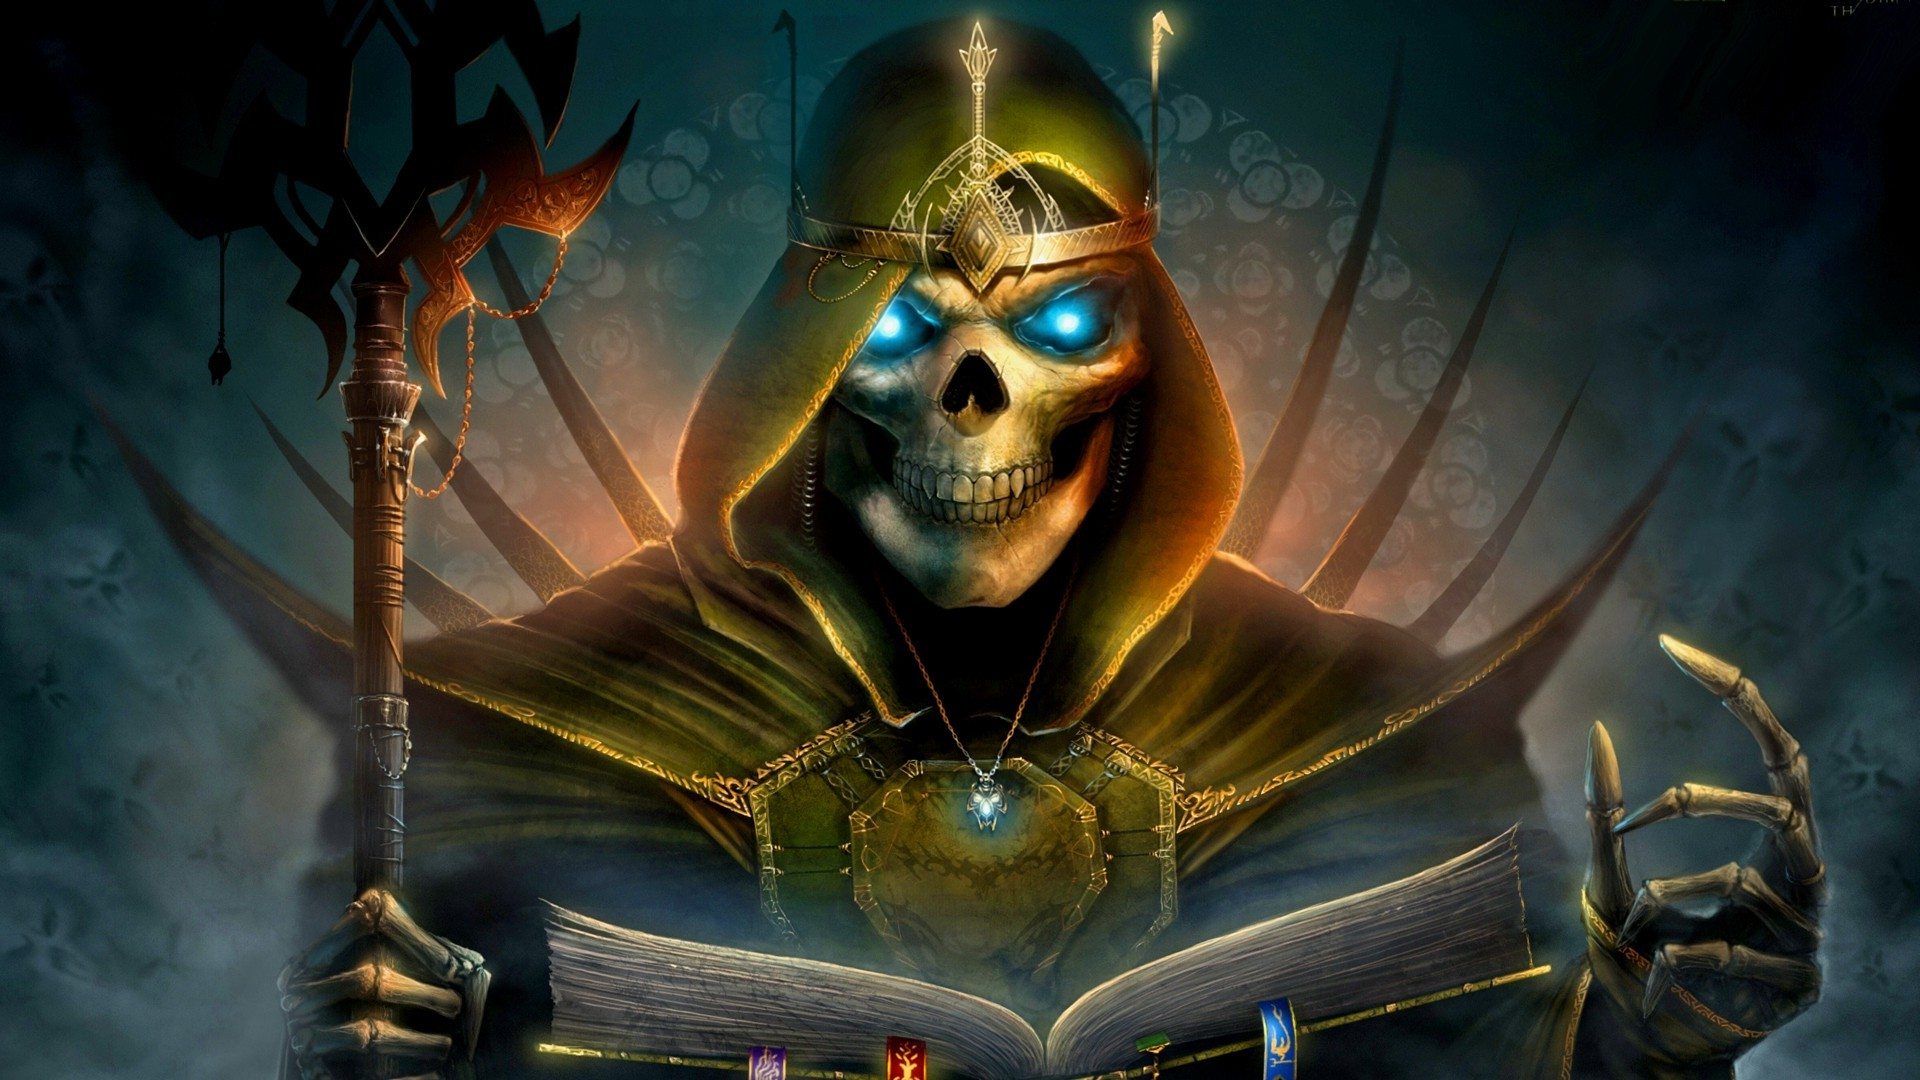 Fantasy Art Magic Hd Wallpapers Desktop And Mobile: Heroes Of Might And Magic Wallpaper (73+ Images